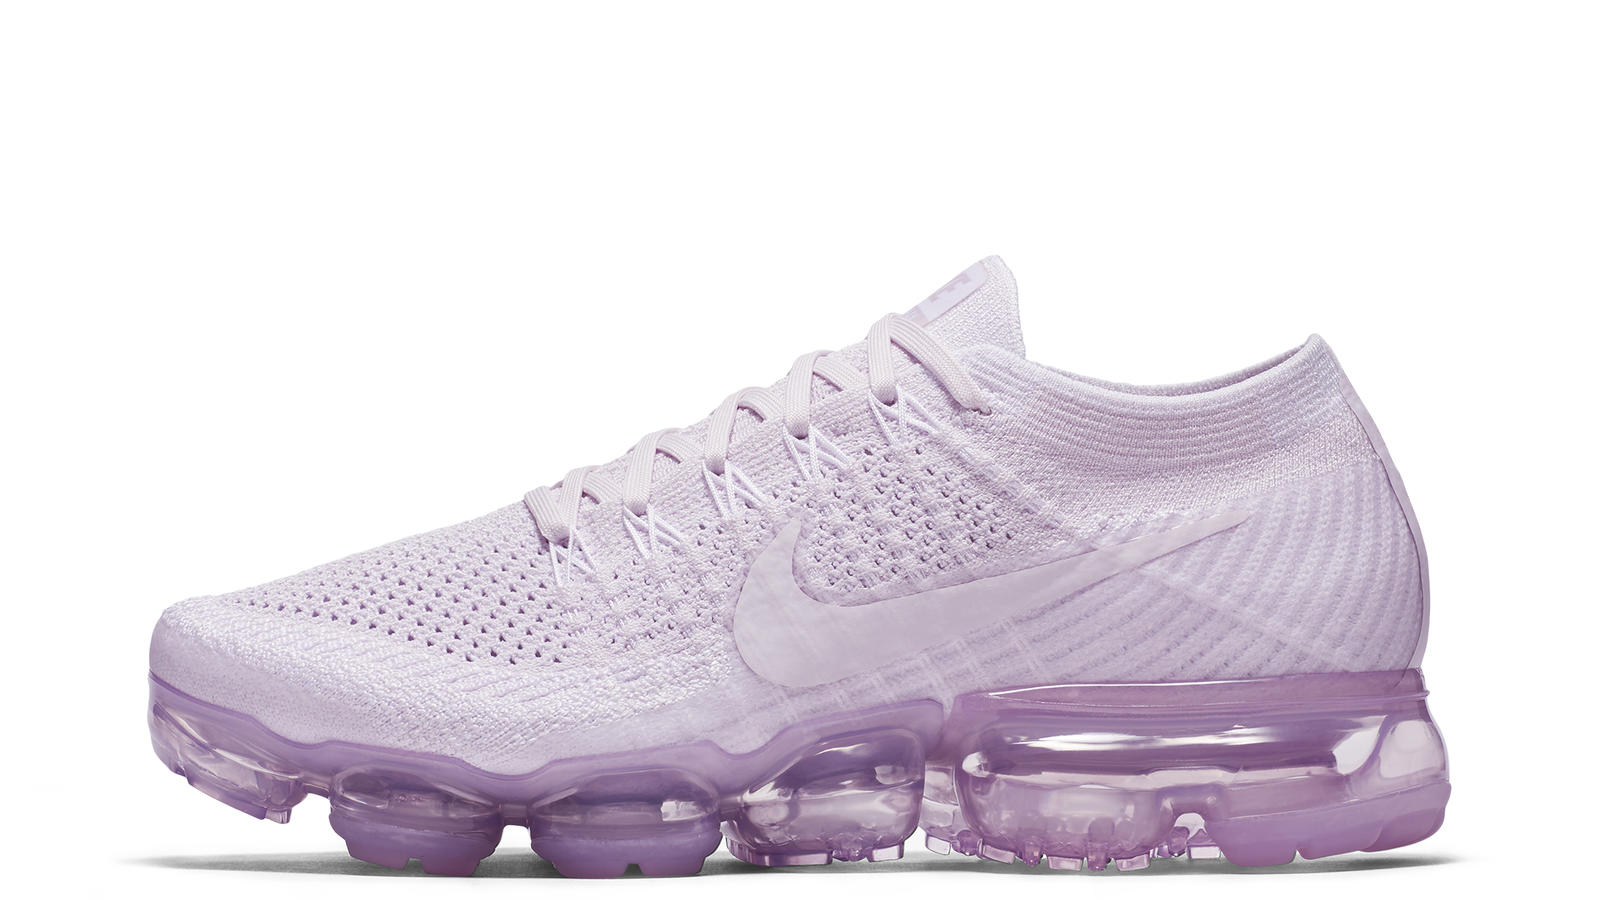 Shades of VaporMax 13